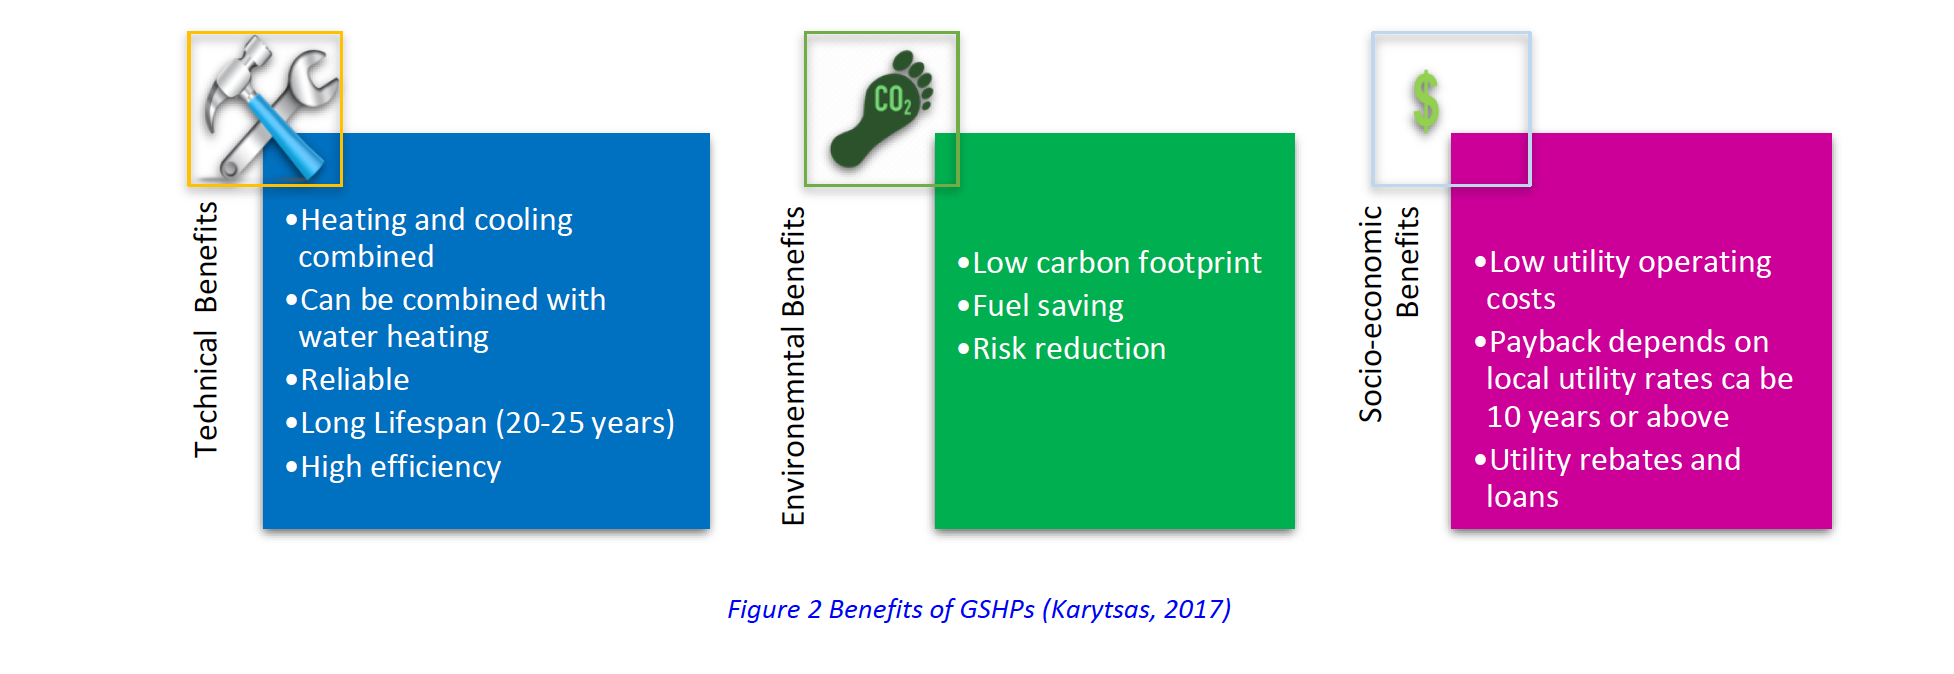 Figure 2 Benefits of GSHPs (Karytsas, 2017)